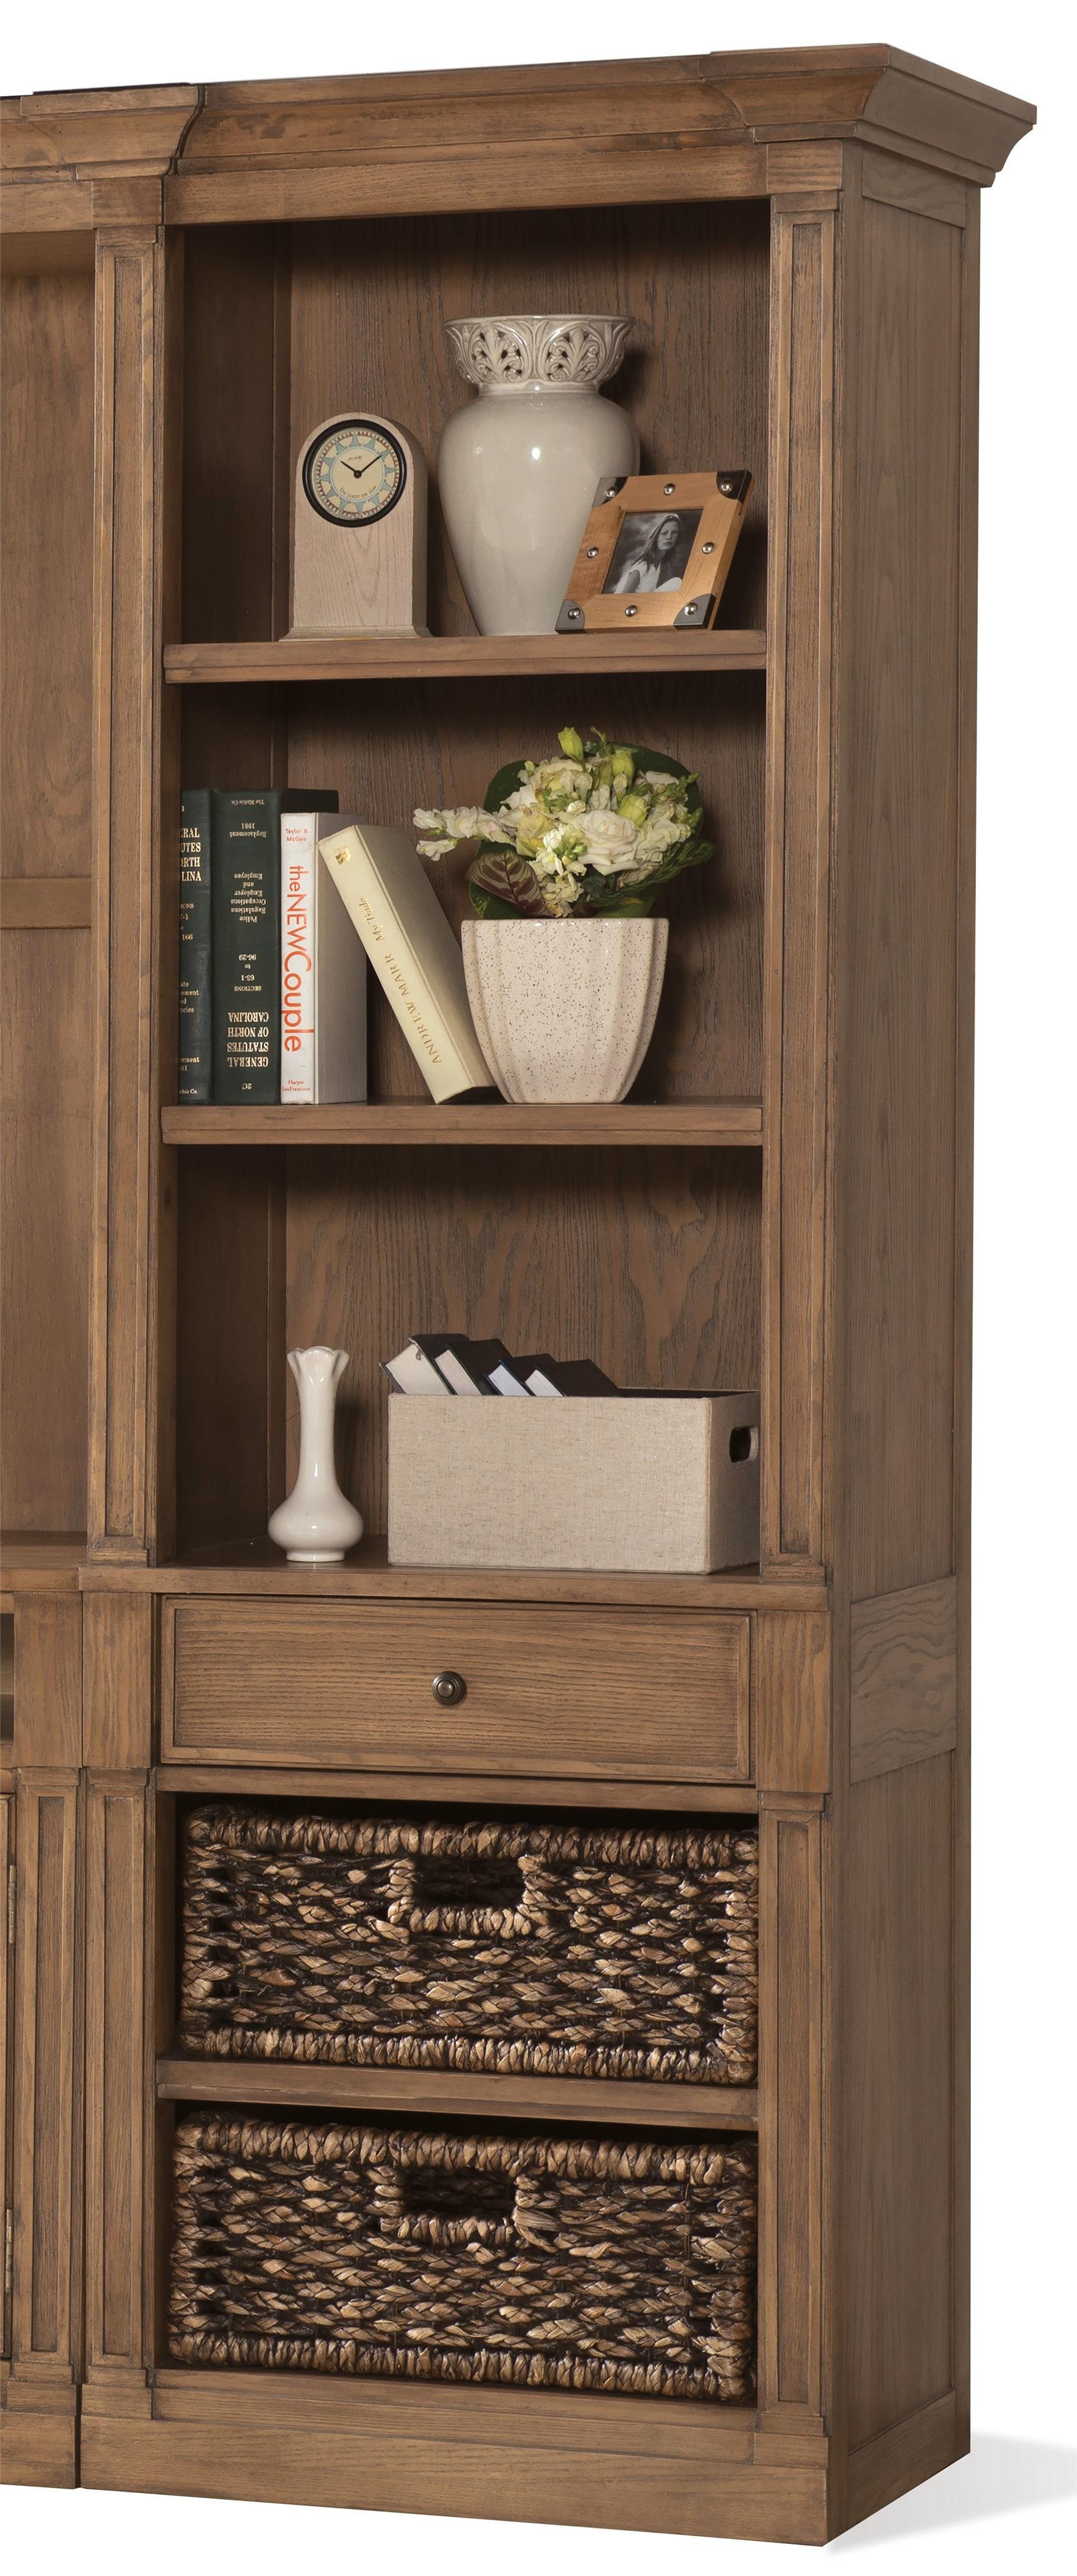 Riverside Furniture Sherborne Right Pier With 2 Included Woven Storage Baskets Prime Brothers